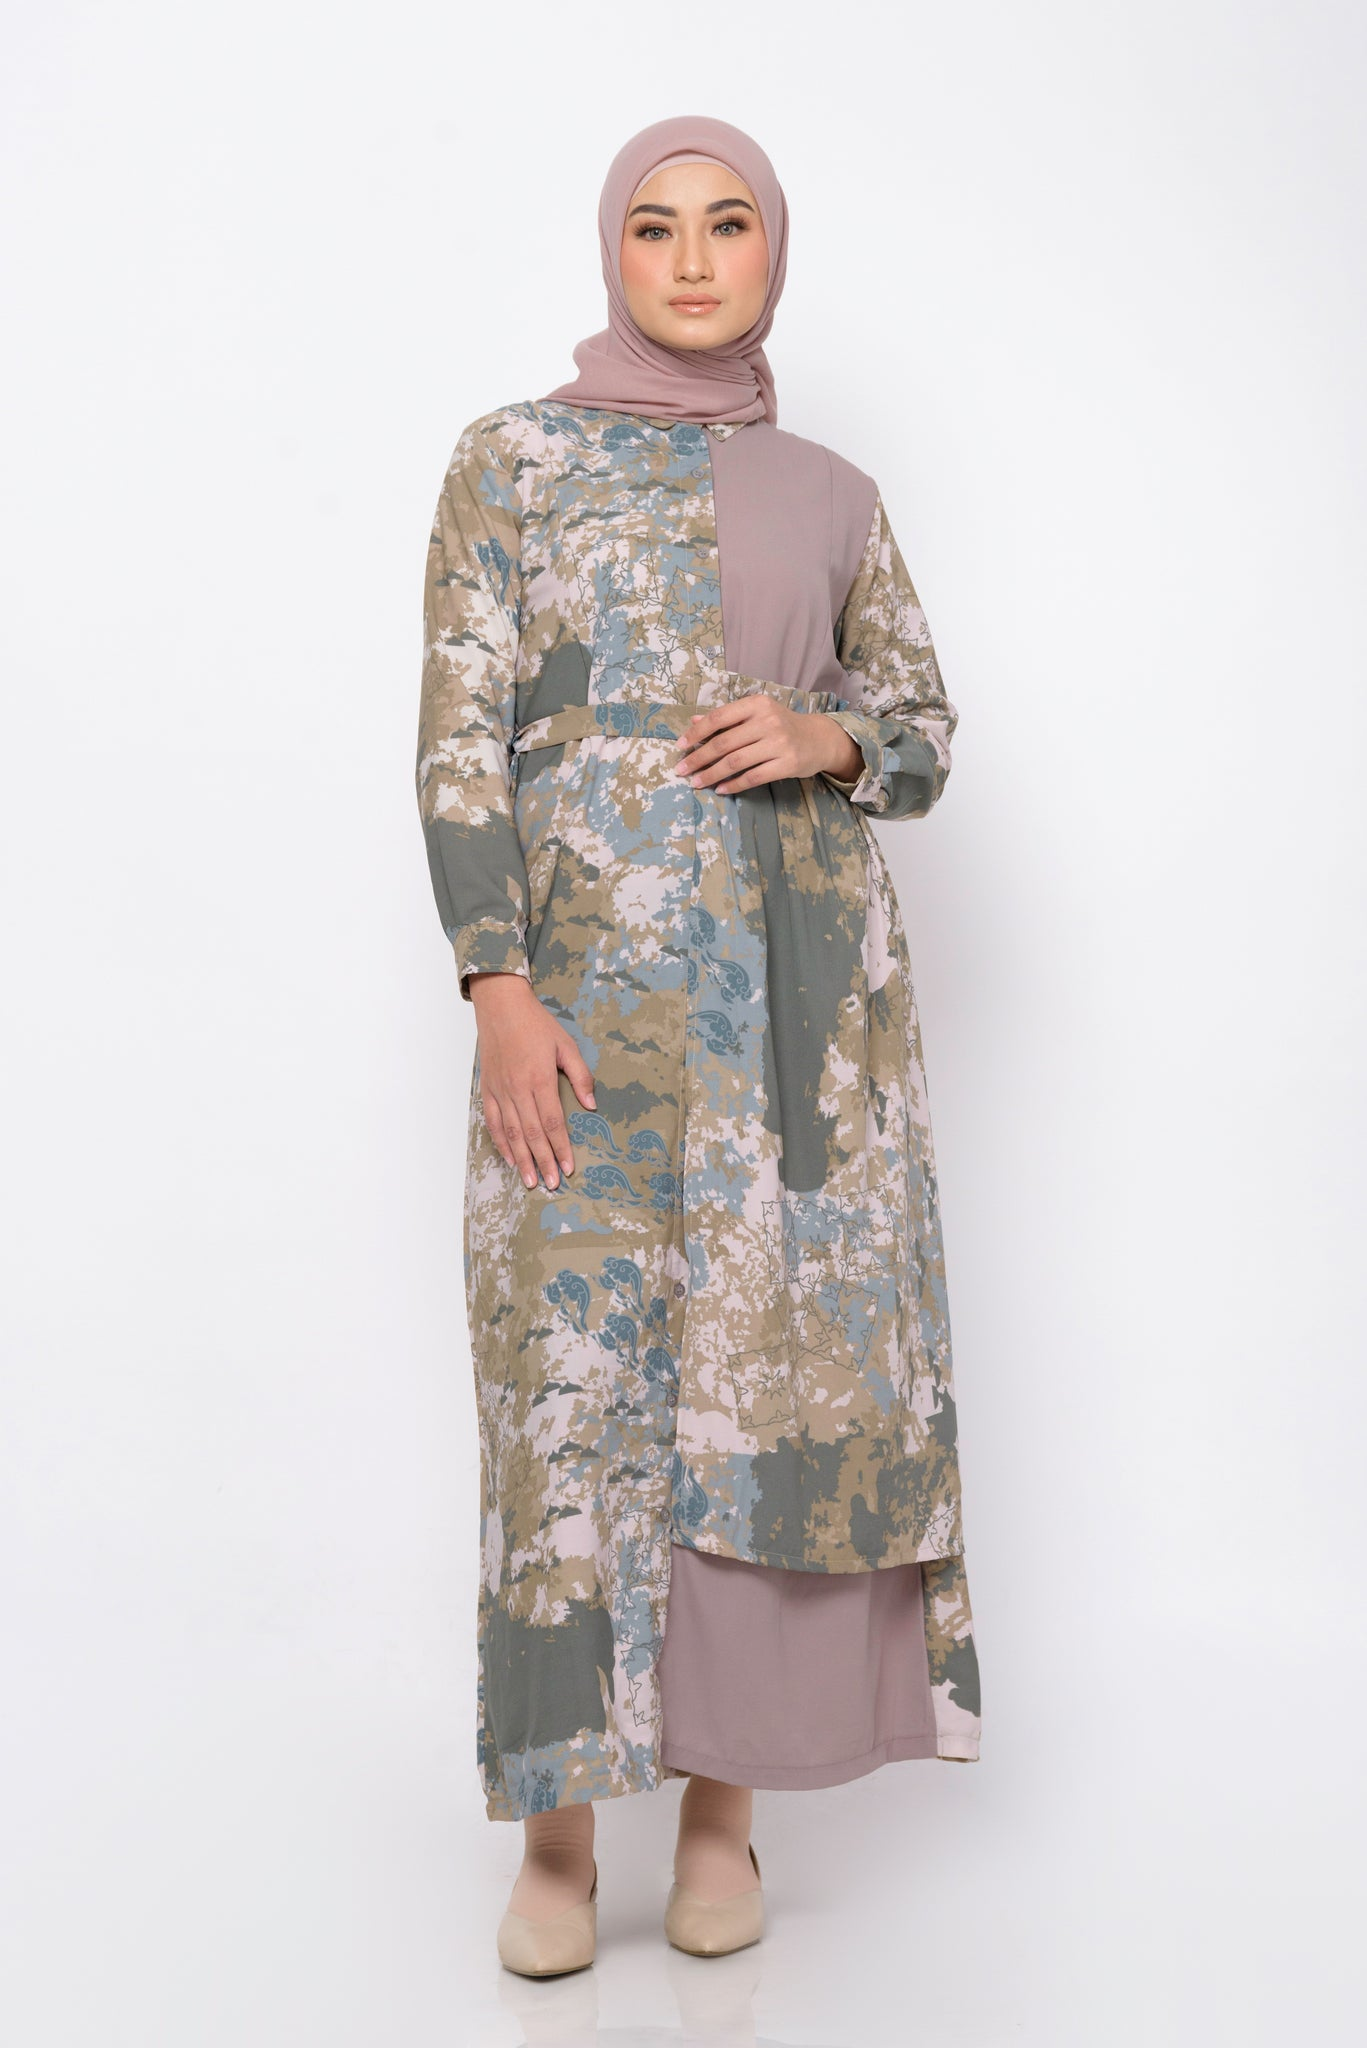 ZM - Haani Brown Dress - Jelita Indonesia - Edisi Lamun Ombak